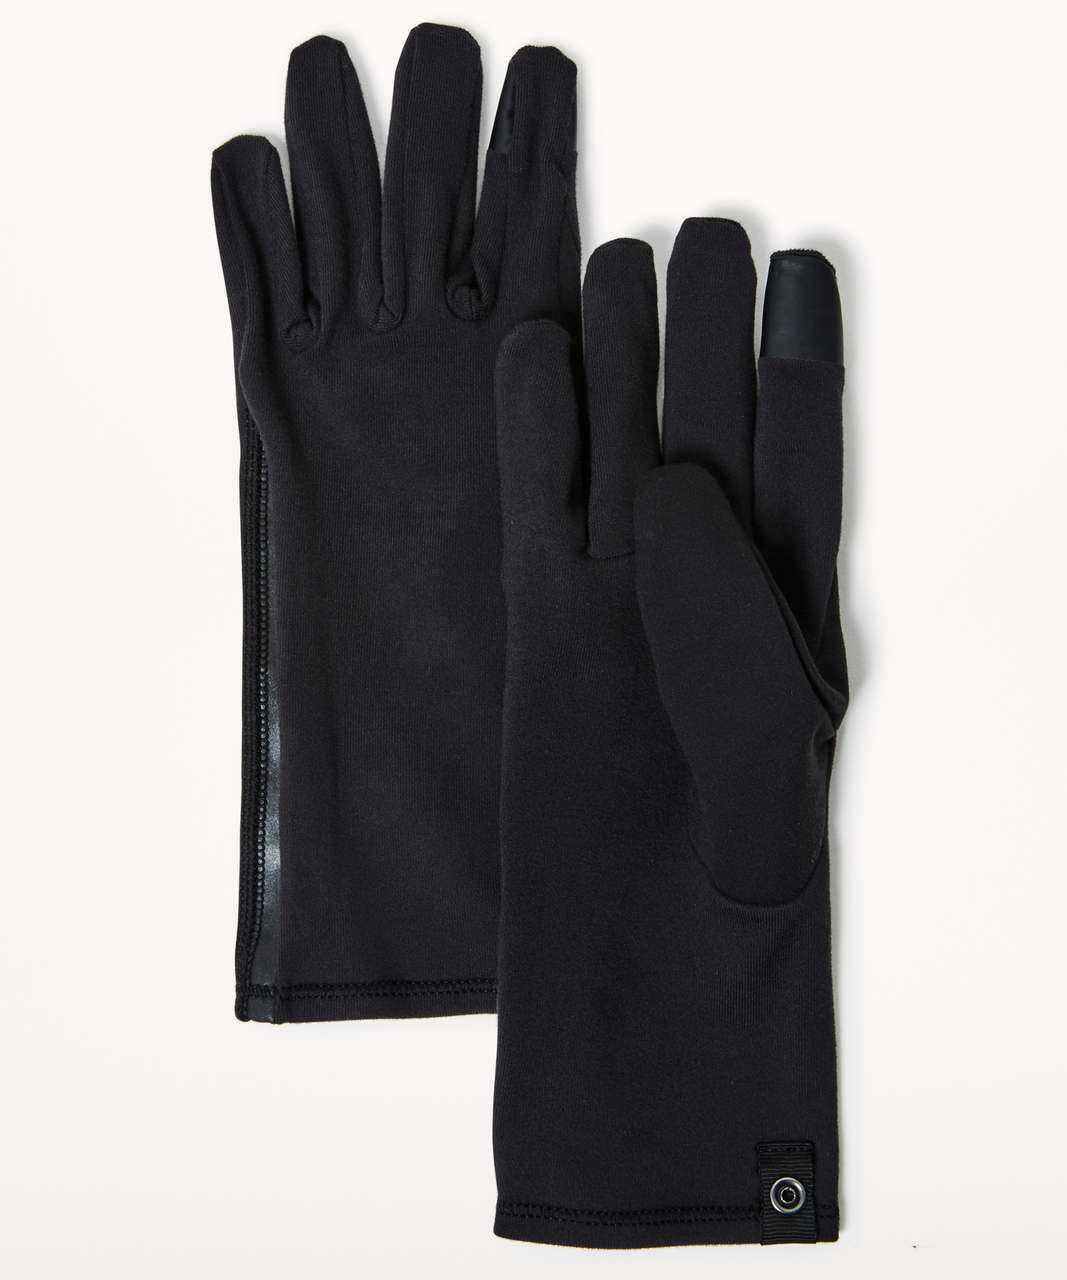 Lululemon Run It Out Kit Gloves + Ear Warmer - Black